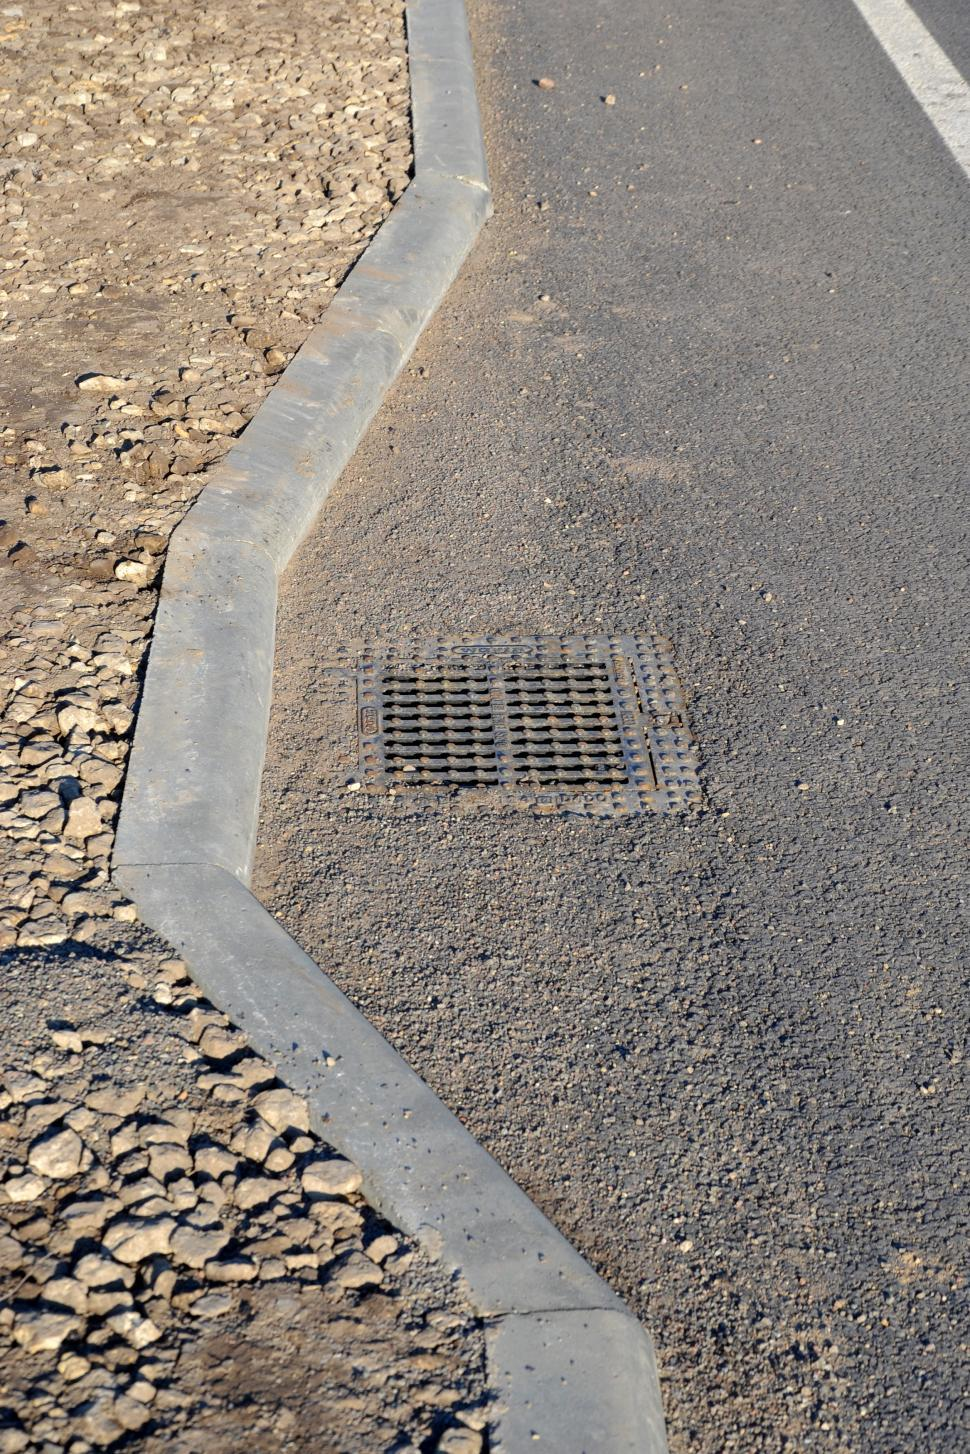 Download Free Stock HD Photo of Road drainage  Online